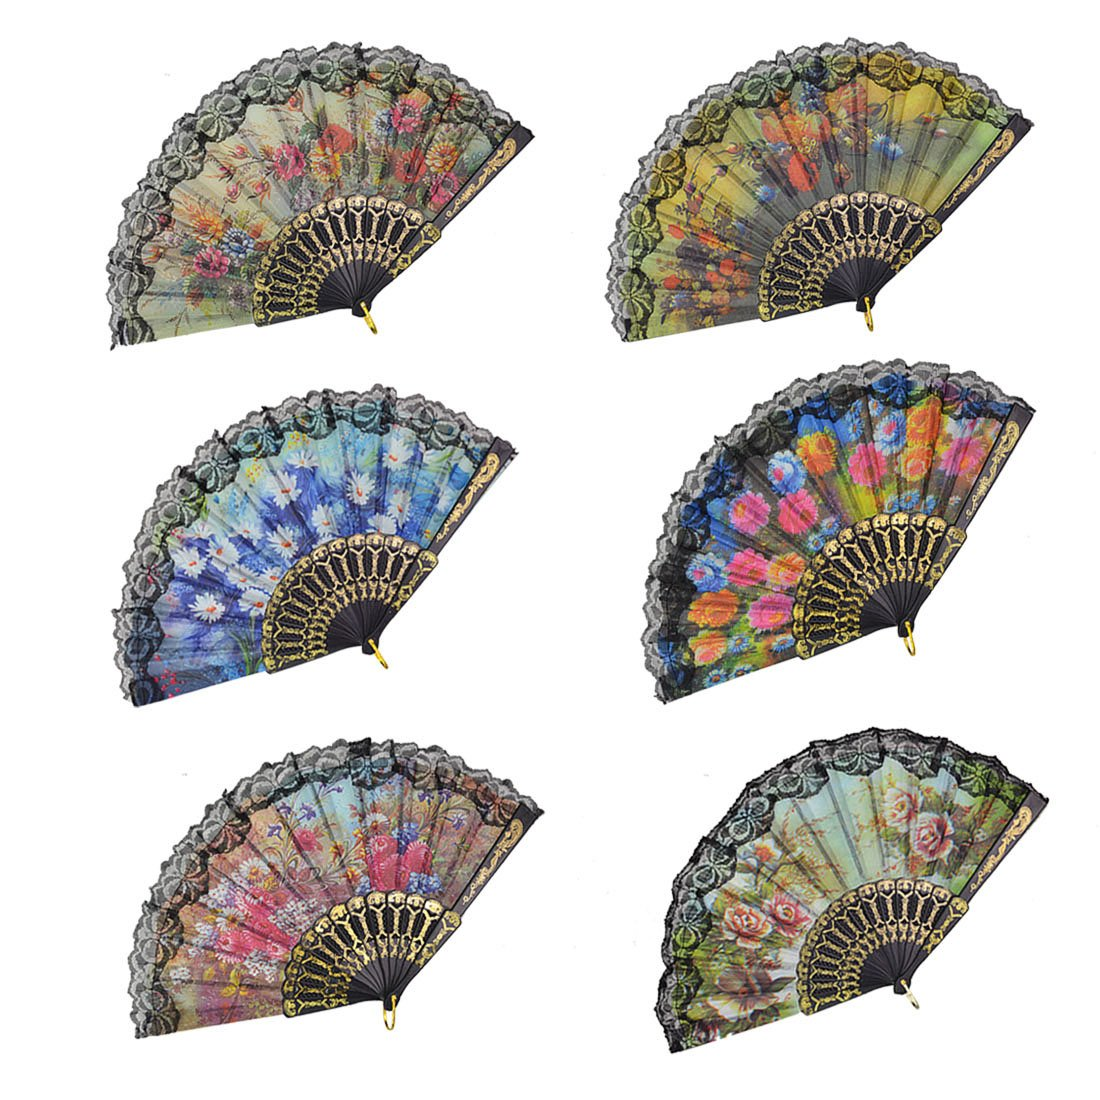 Rbenxia Spanish Floral Folding Hand Fan Flowers Pattern Lace Handheld Fans Size 9'' Pack of 10 Random Color Suitable For Wedding Dancing Church Party Gifts by Rbenxia